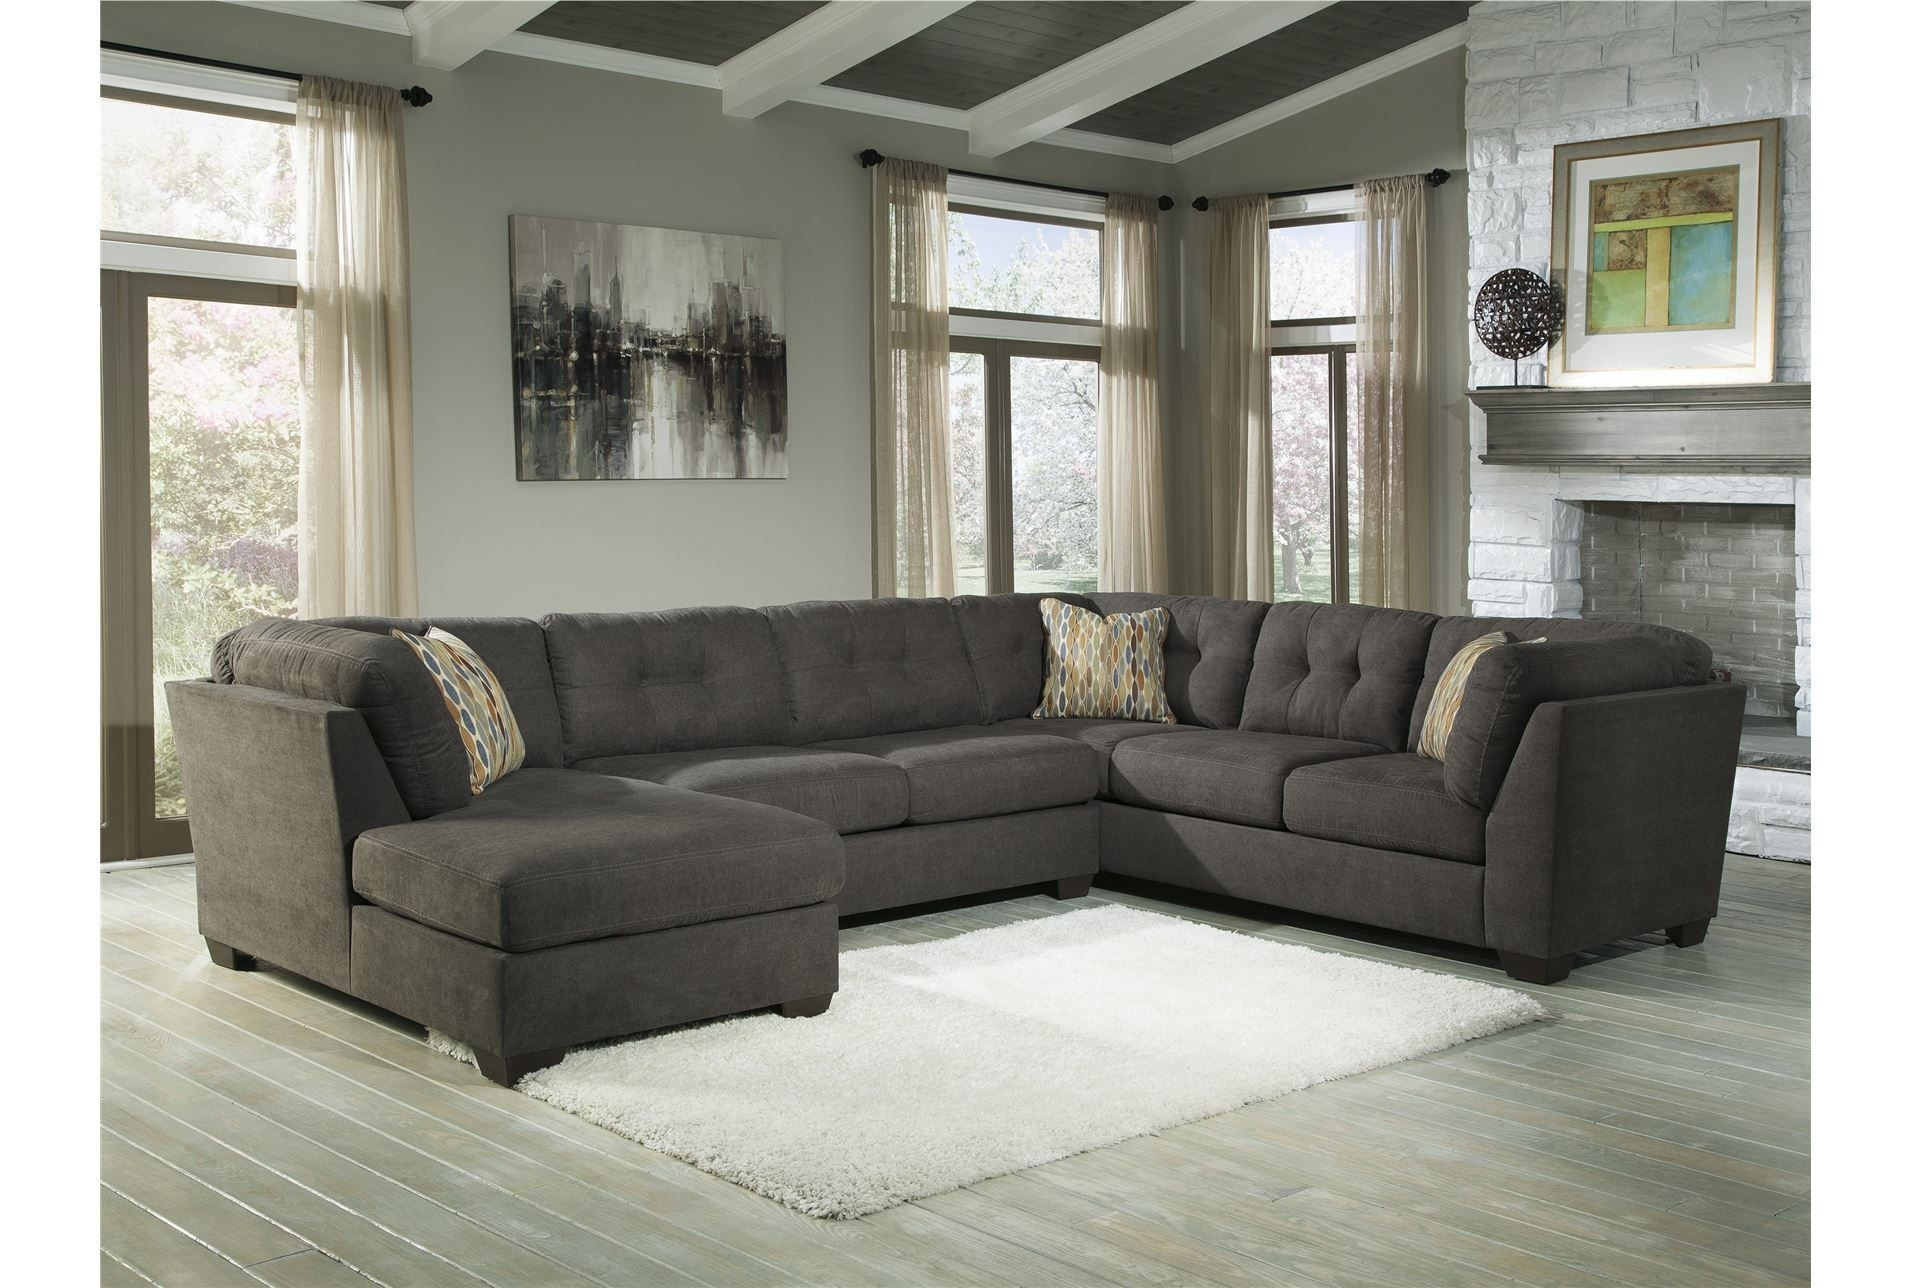 Location Chaise Option Pertaining To Norfolk Chocolate 3 Piece Sectionals With Laf Chaise (View 21 of 25)